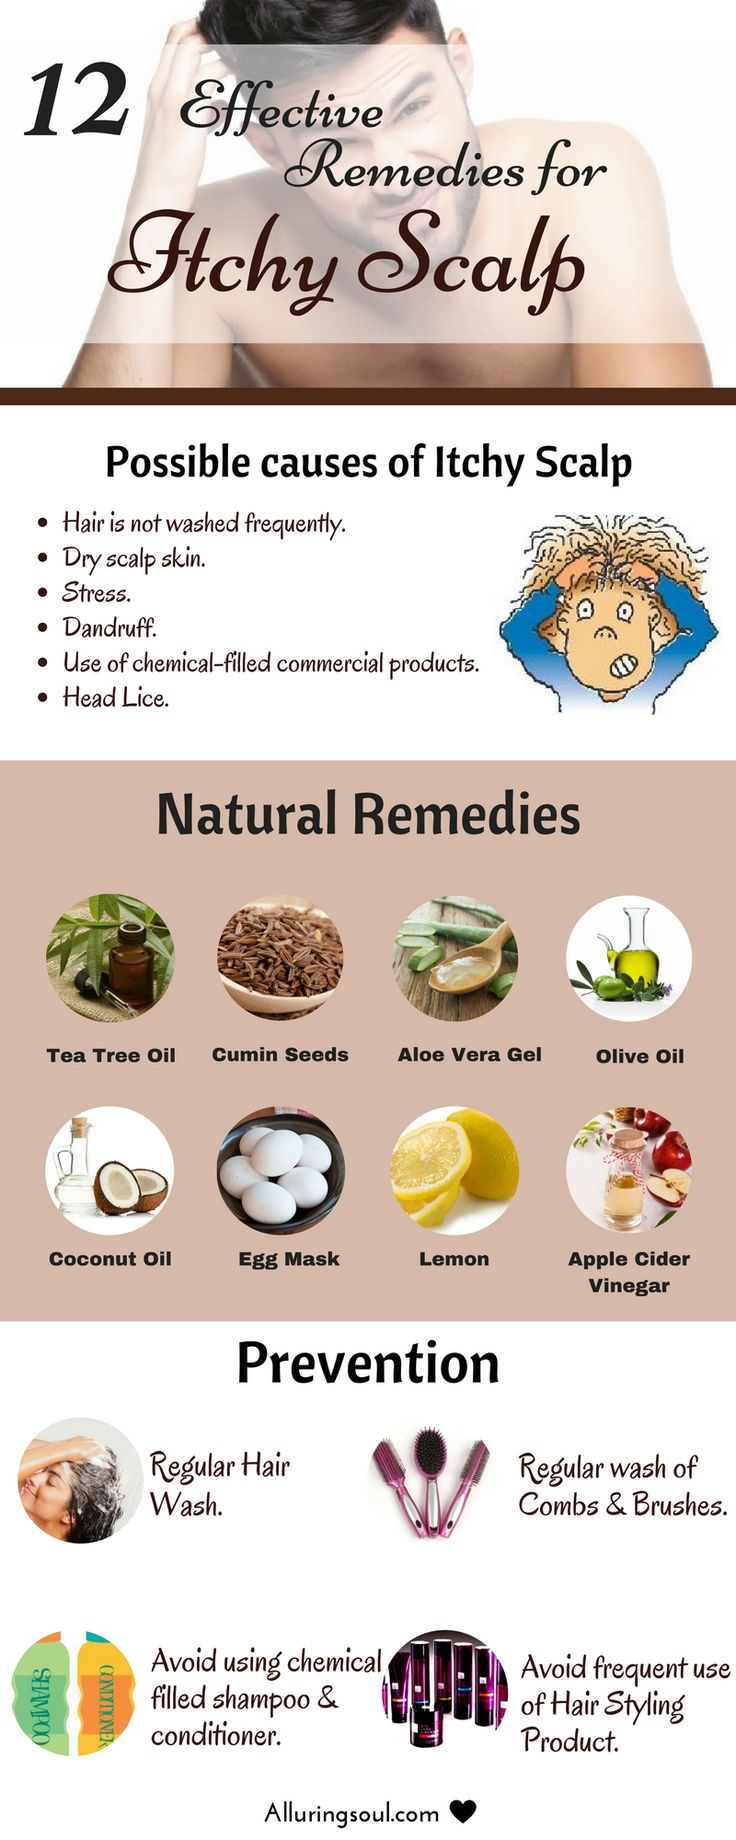 Remedies for itchy scalp - Itchy scalp can be embarrassing and frustrating because it's not always easy to determine the cause. For relief check out natural remedies for itchy scalp.